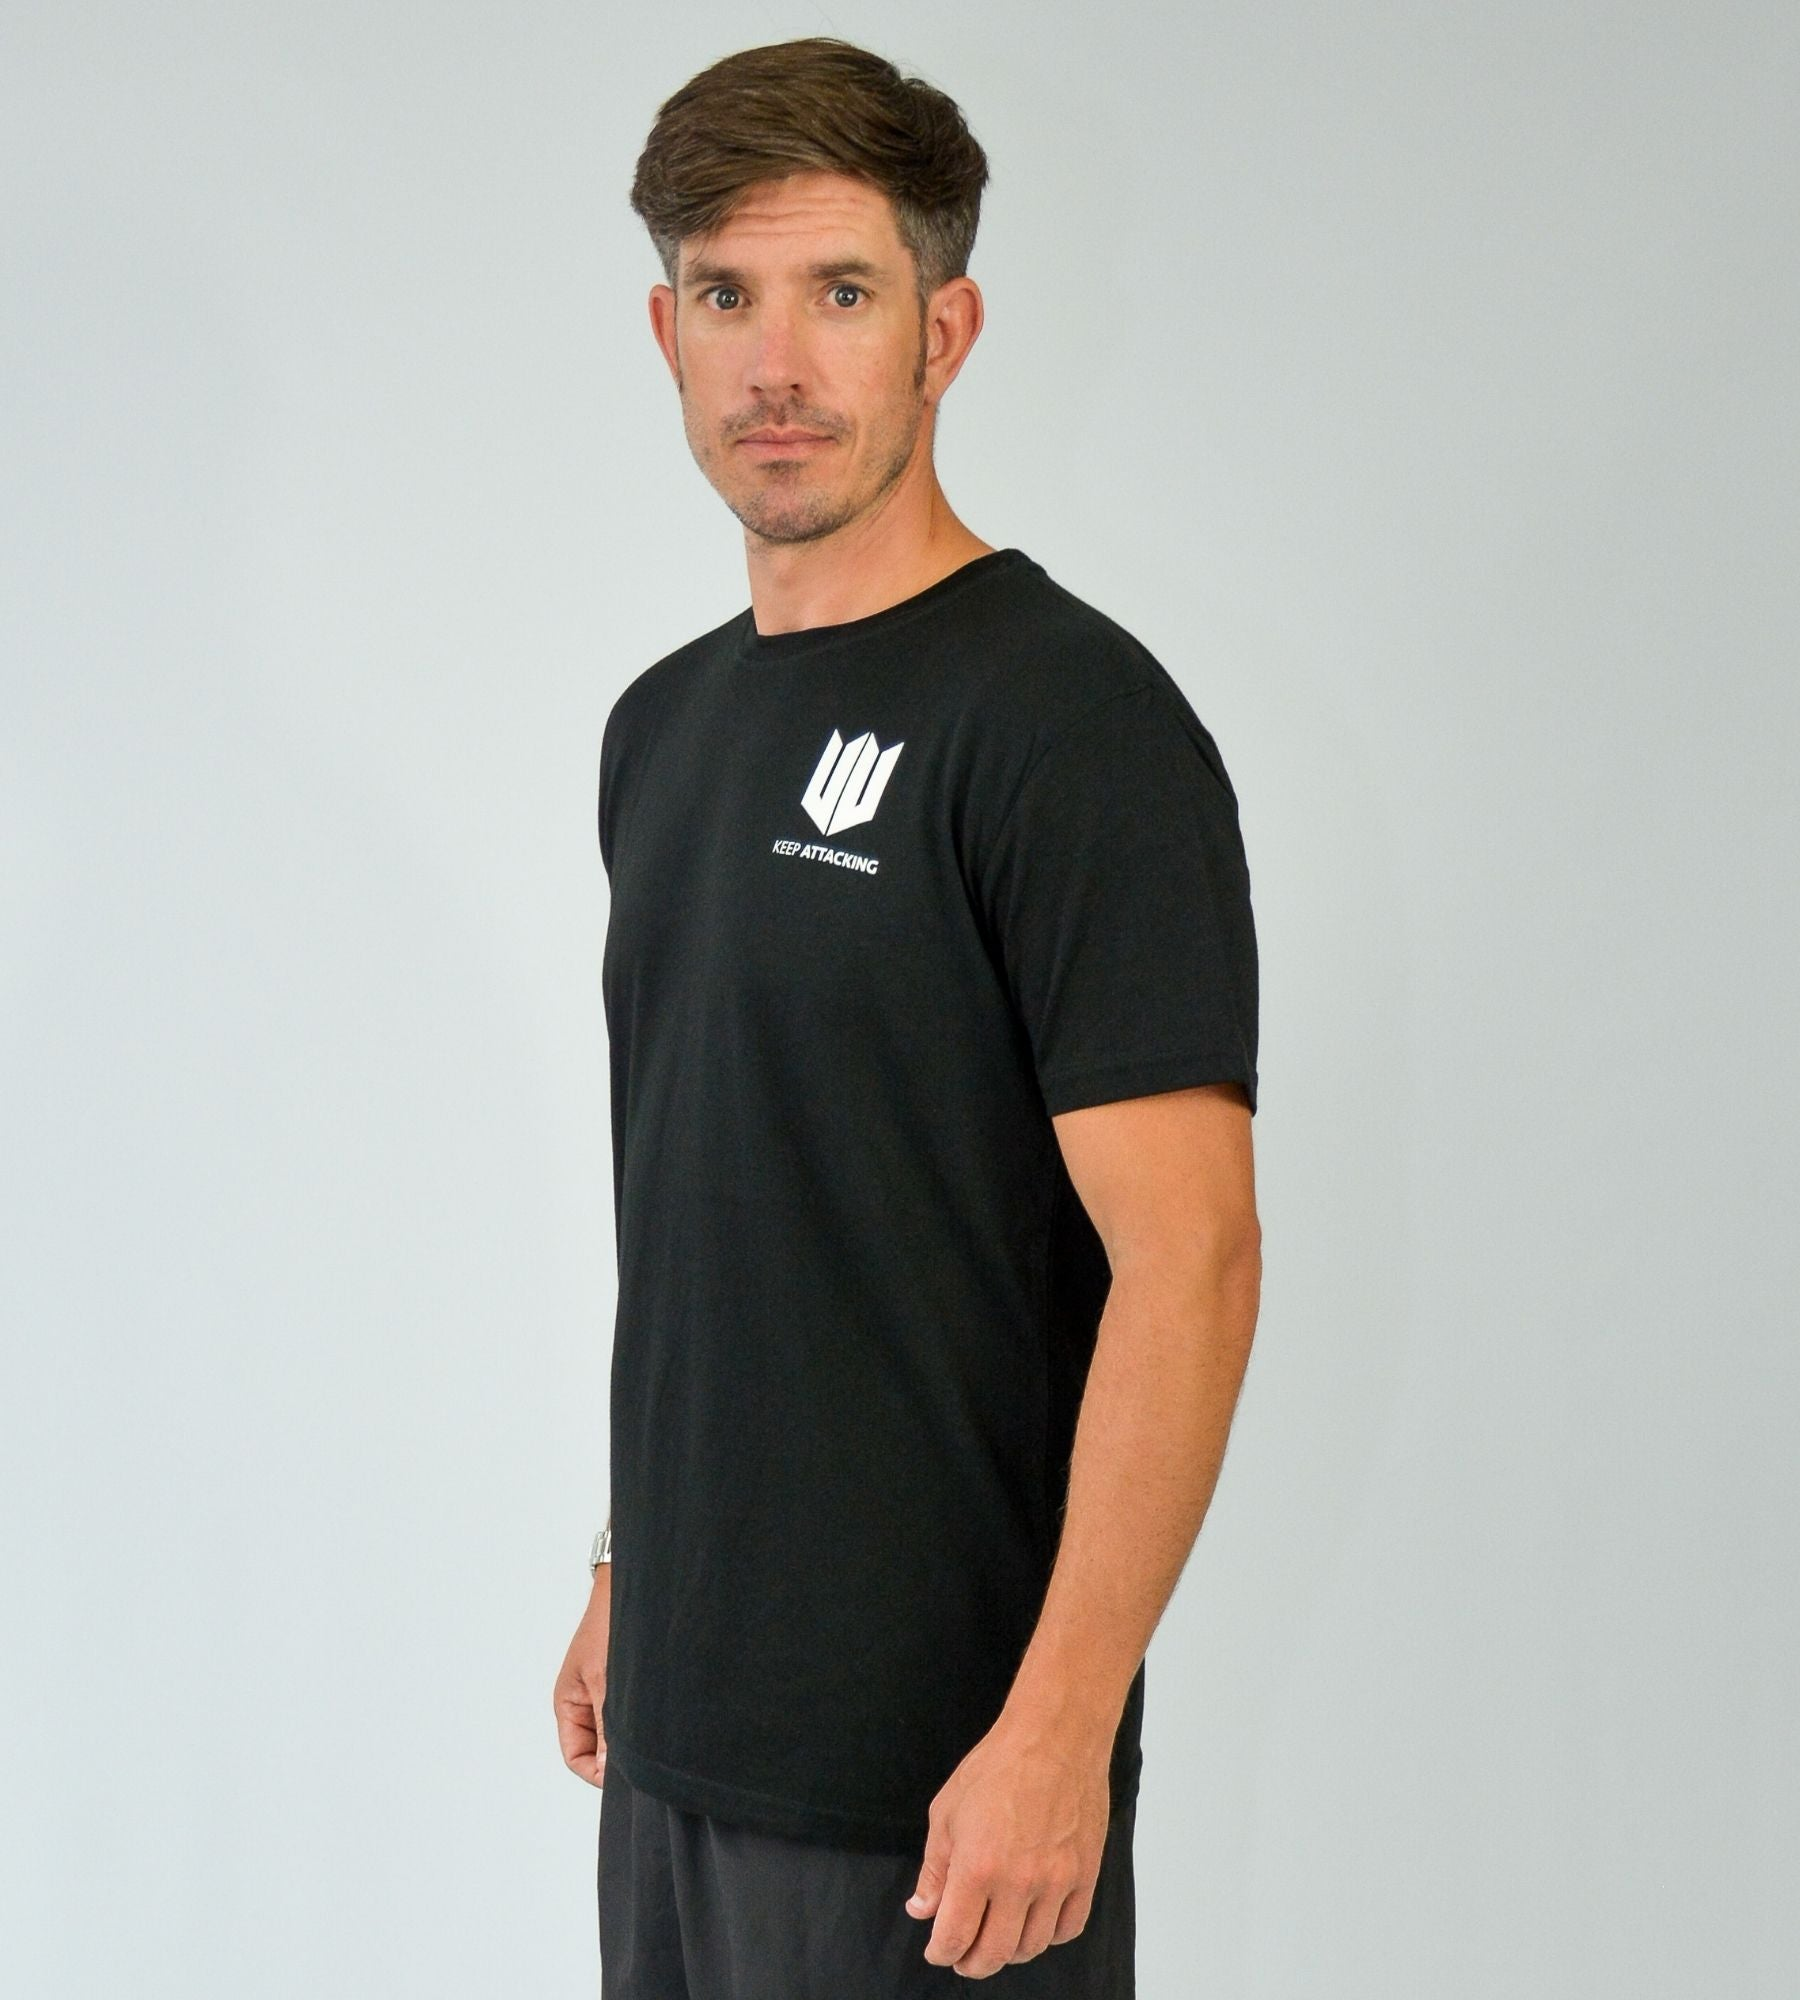 KA Mens Emblem T-Shirt Black White